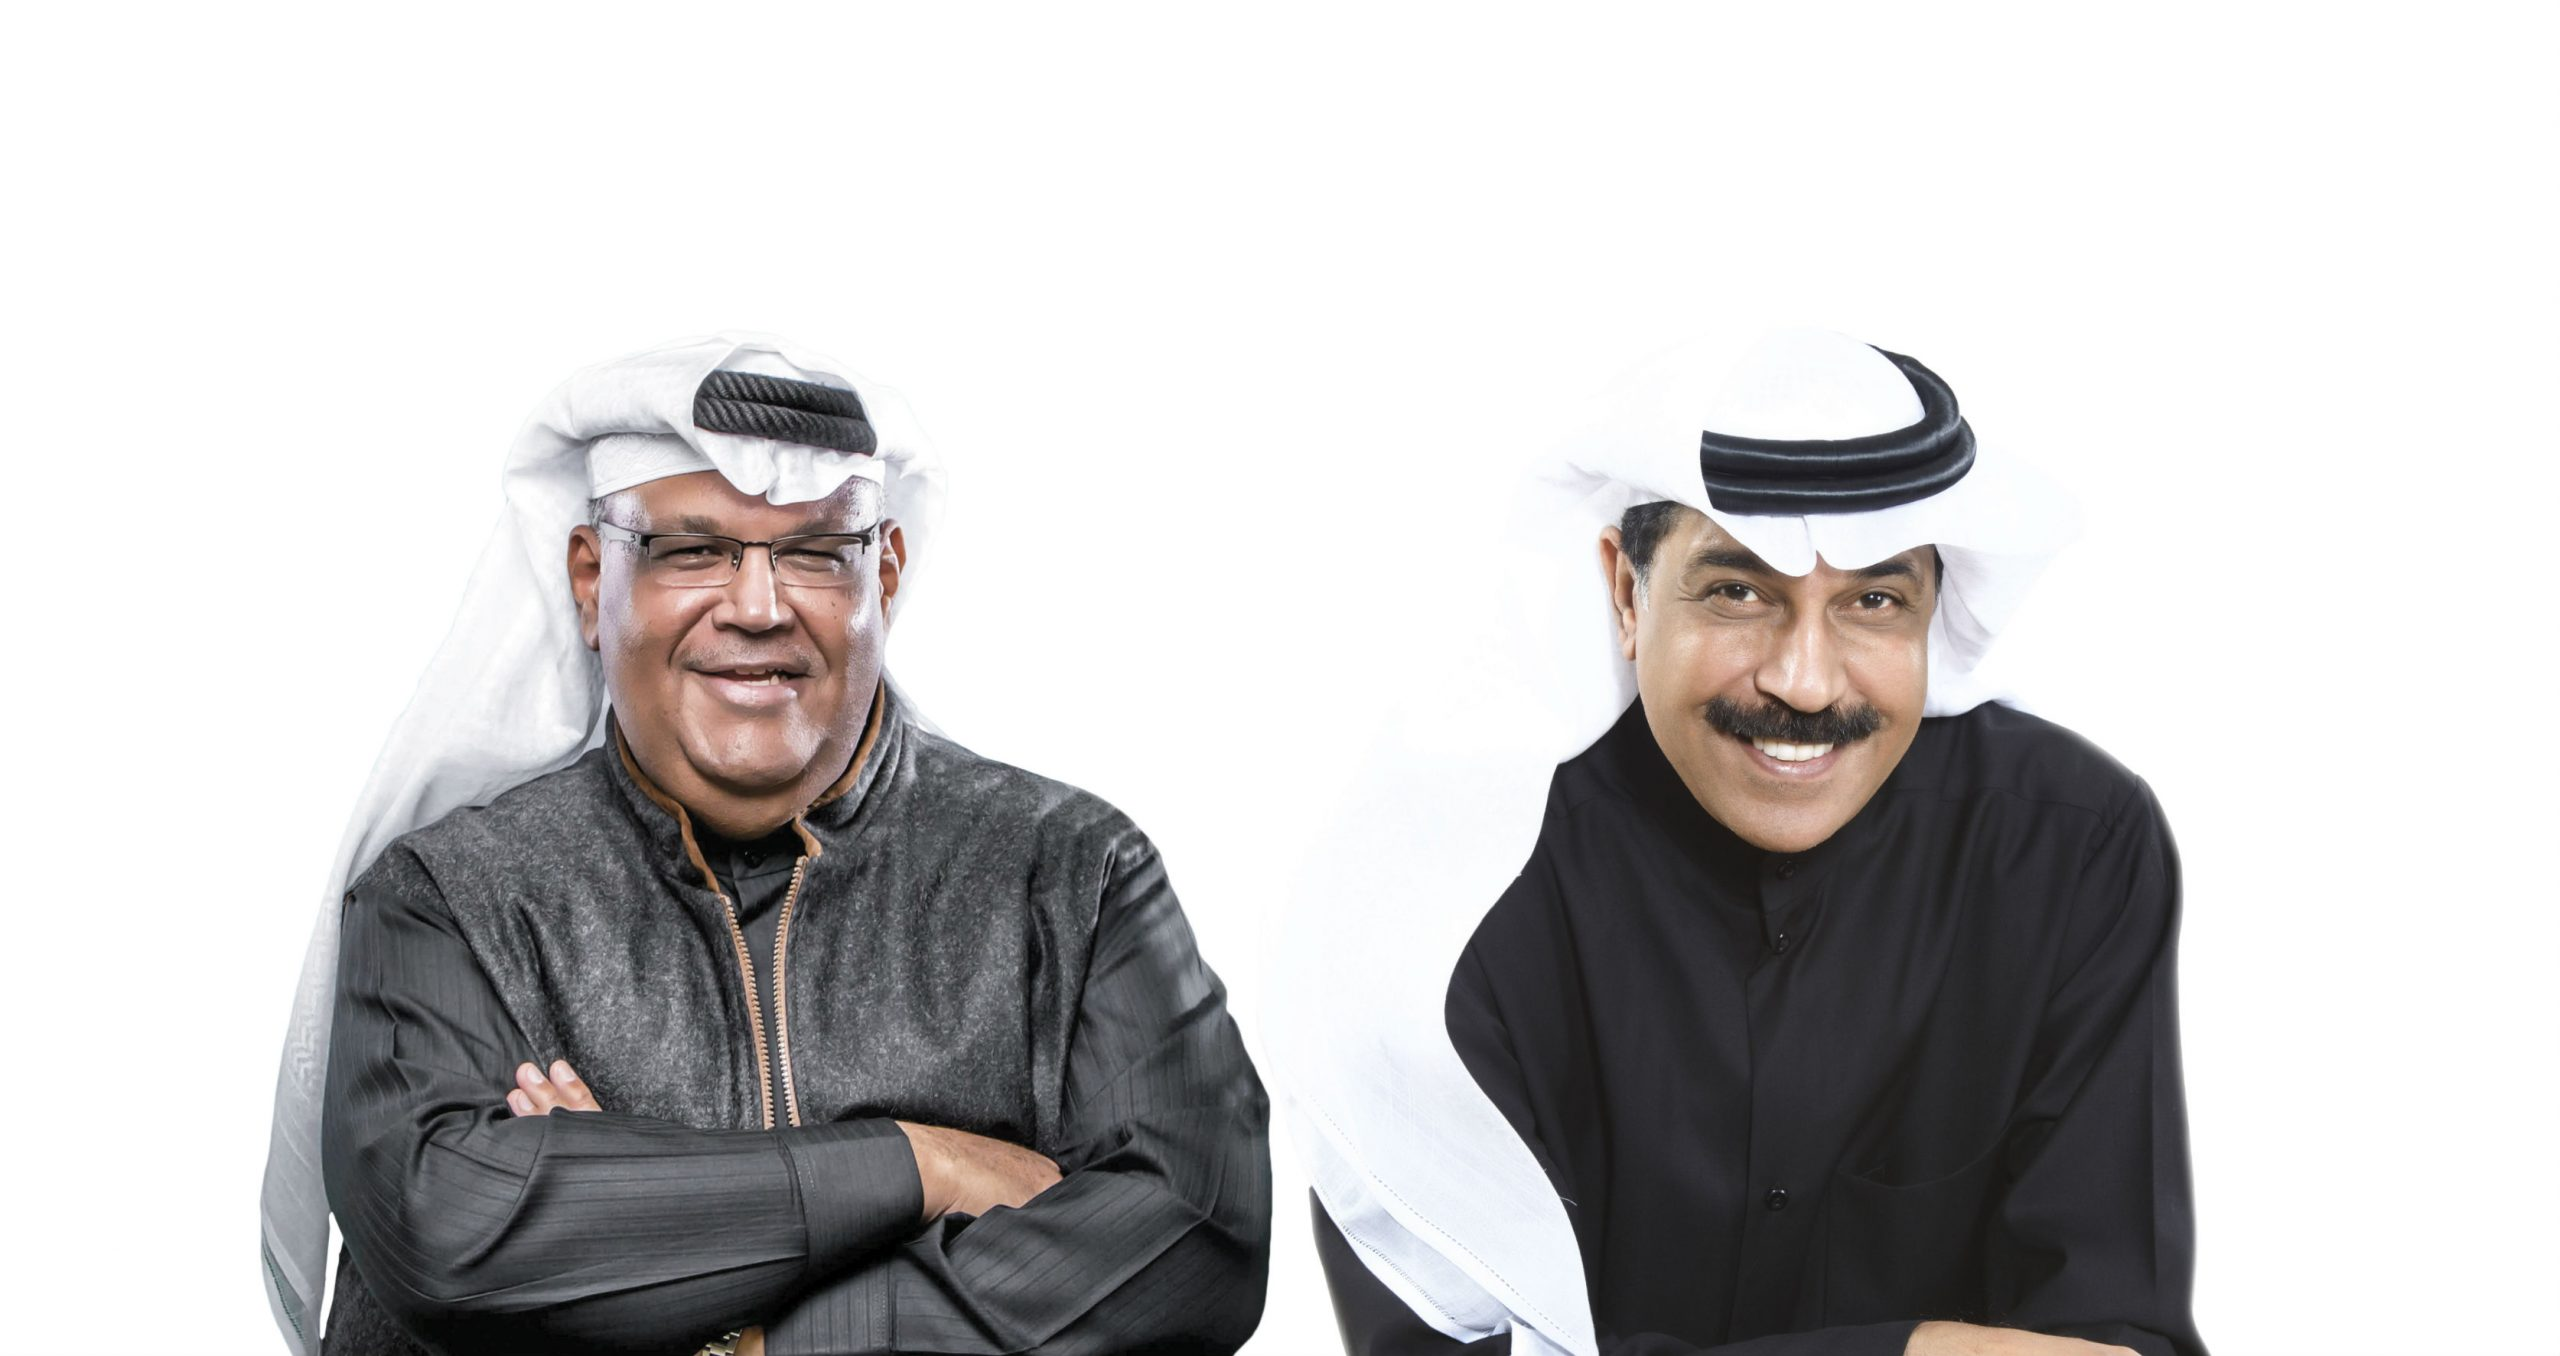 Legendary Kuwaiti singers Abdallah Al Rowaished and Nabil Shuail to give an unforgettable performance at Bahrain Bay